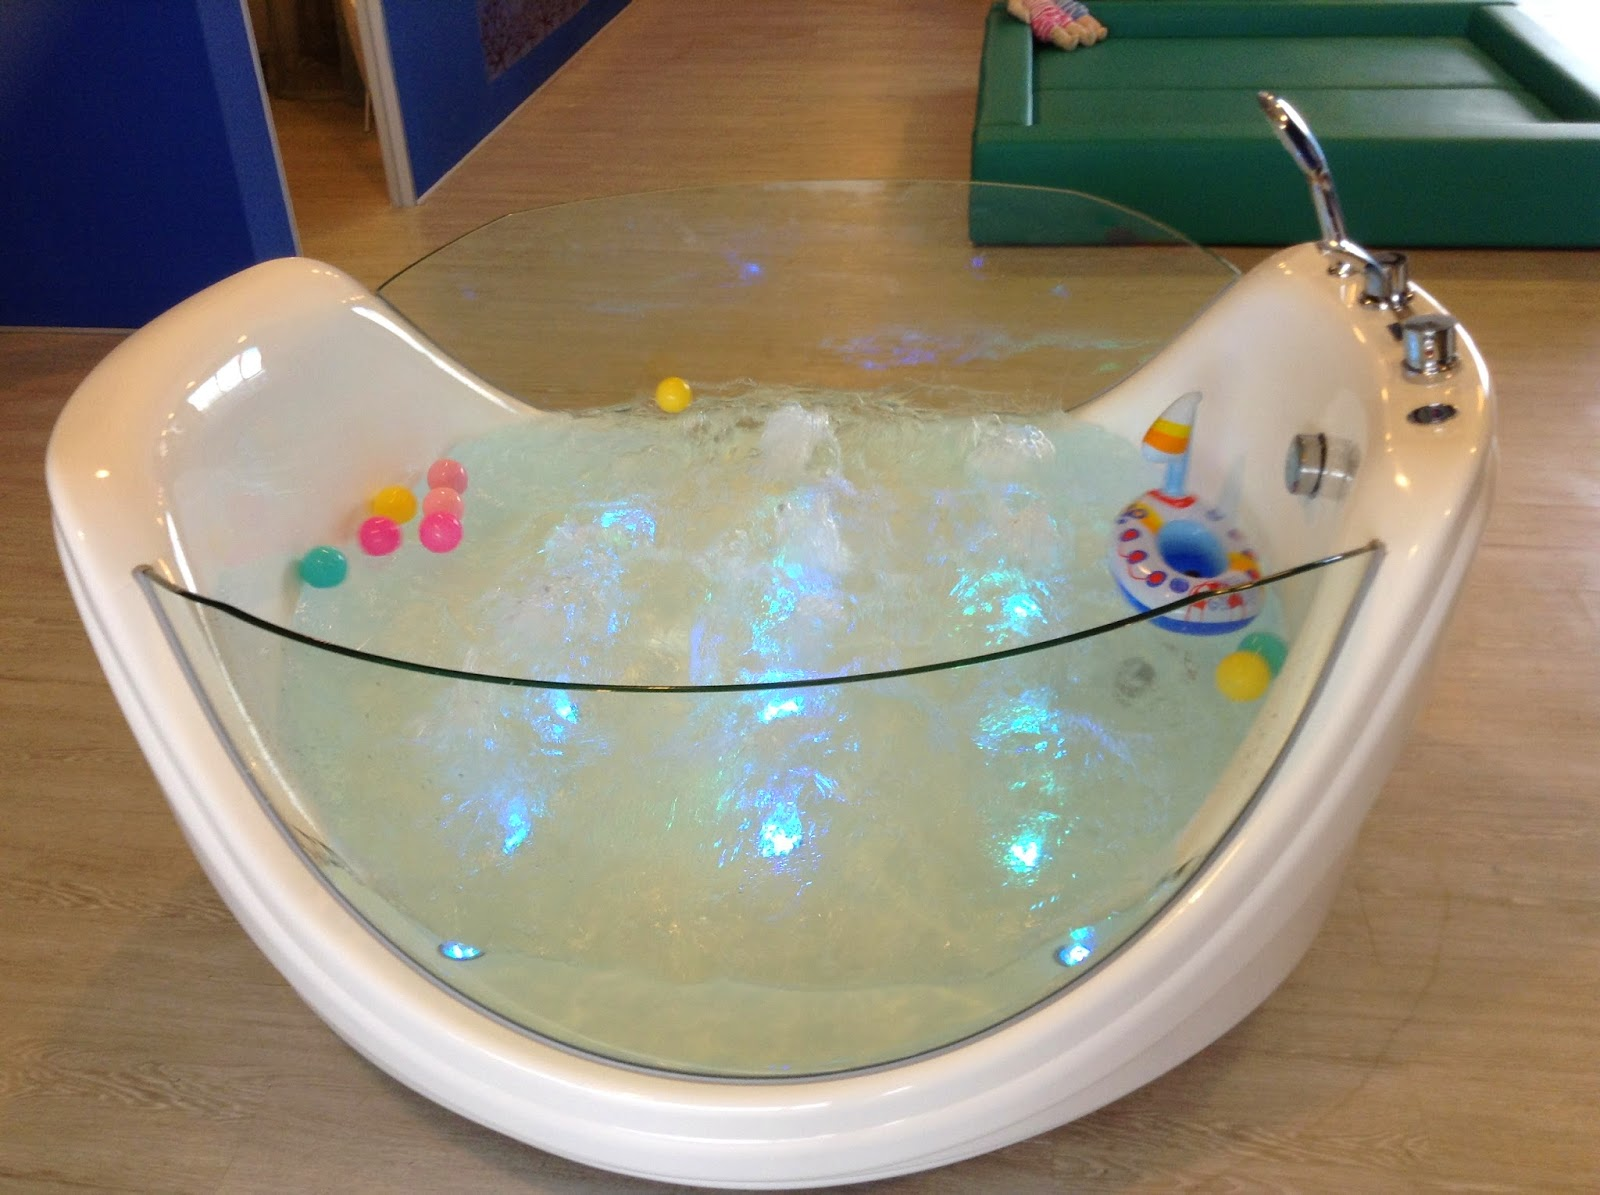 5 Little Angels Giggling Jellyfish Baby Spa